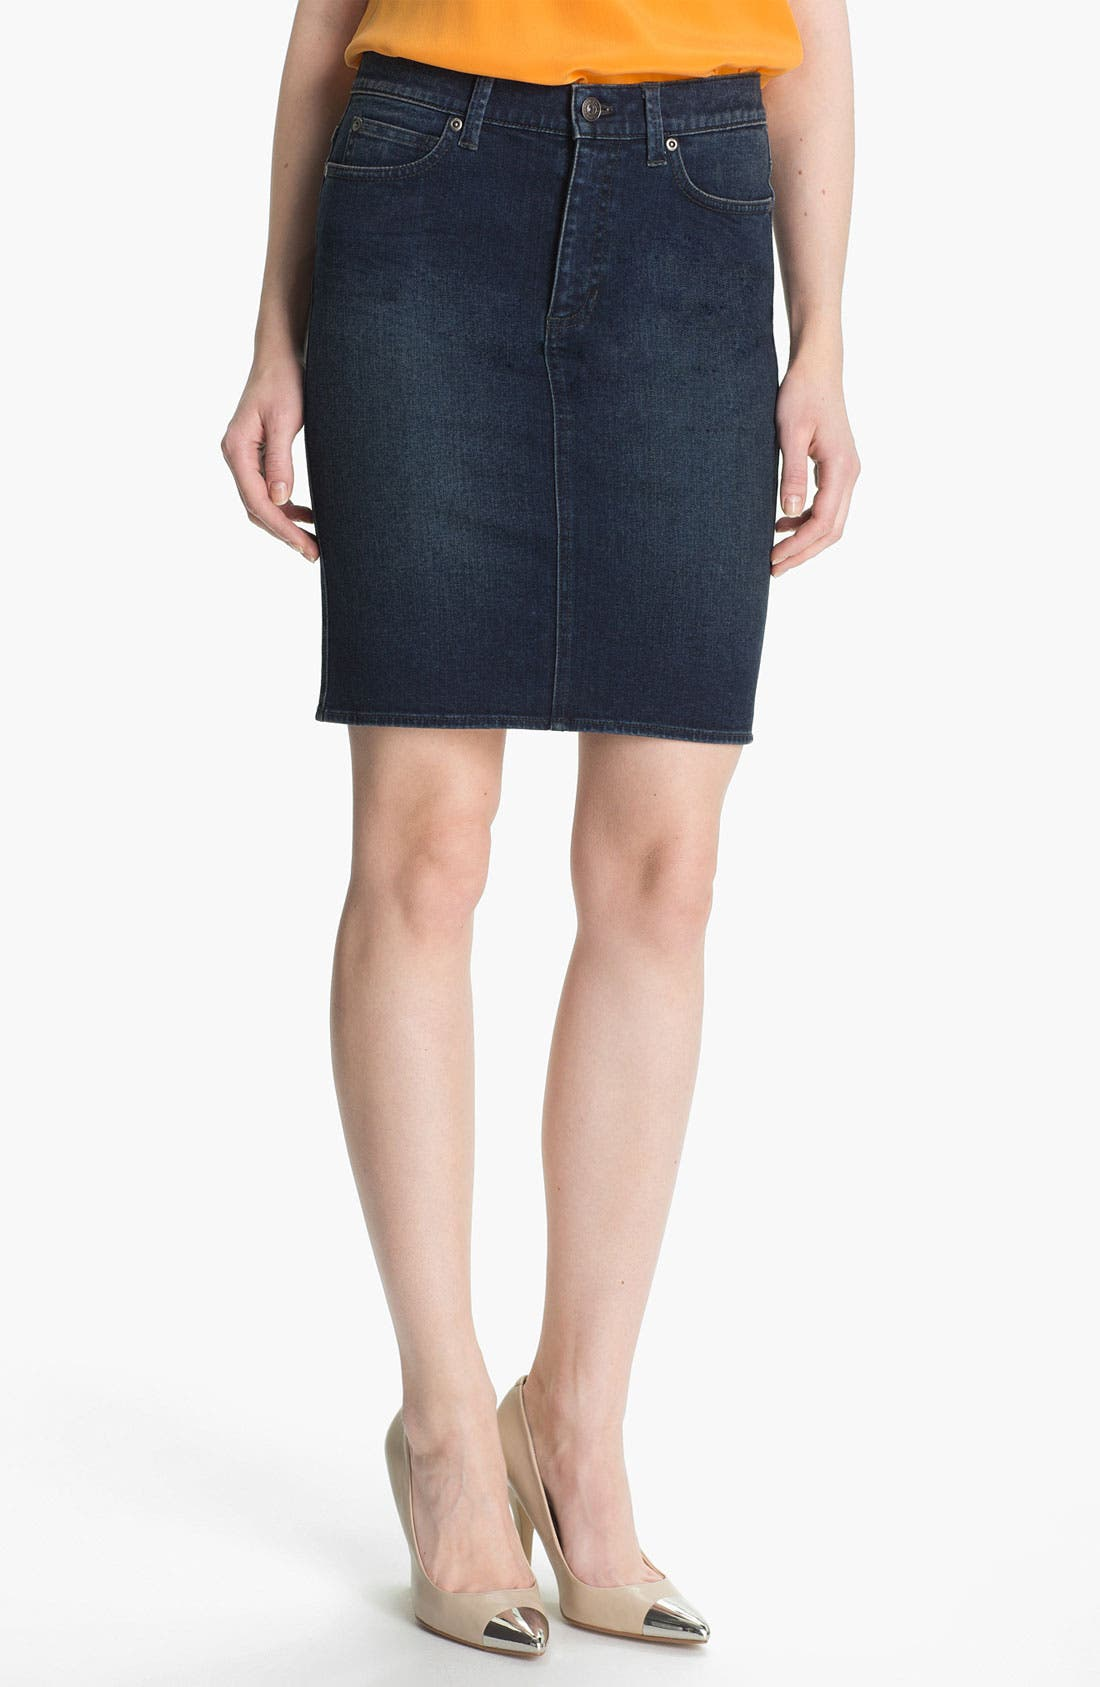 Alternate Image 1 Selected - Two by Vince Camuto Denim Pencil Skirt